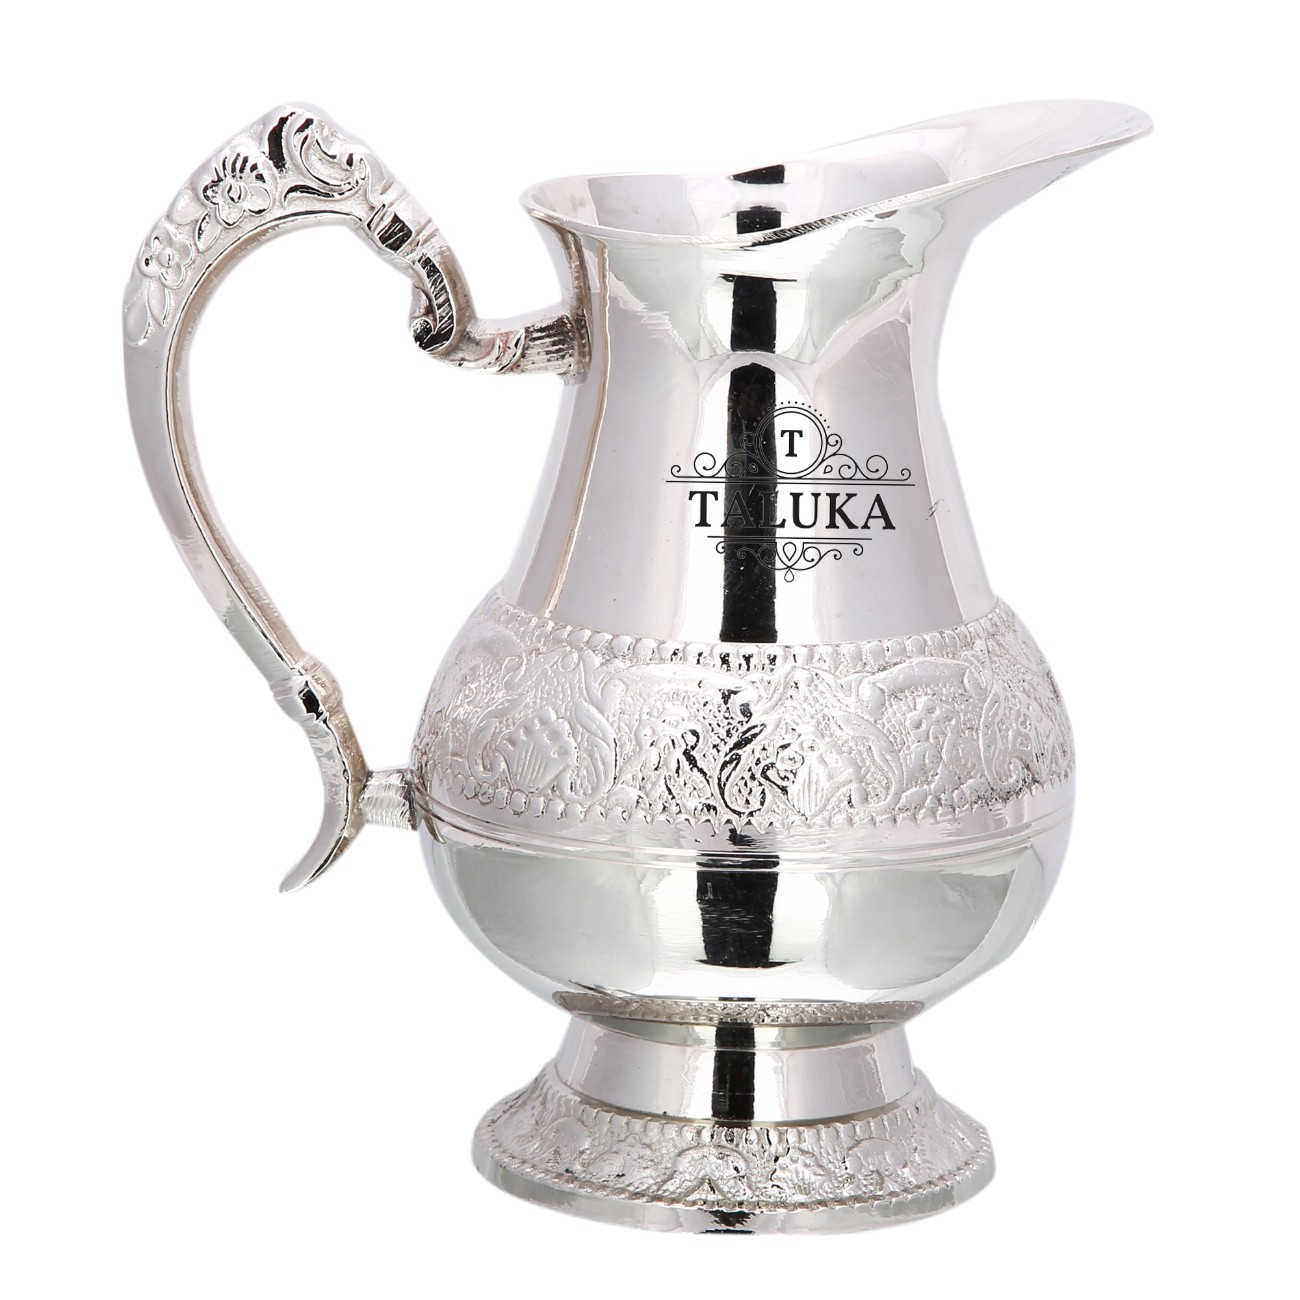 Brass Nickel Plated Jug Water Pitcher For Storage 1500 ML For Home Hotel Gifting Purpose